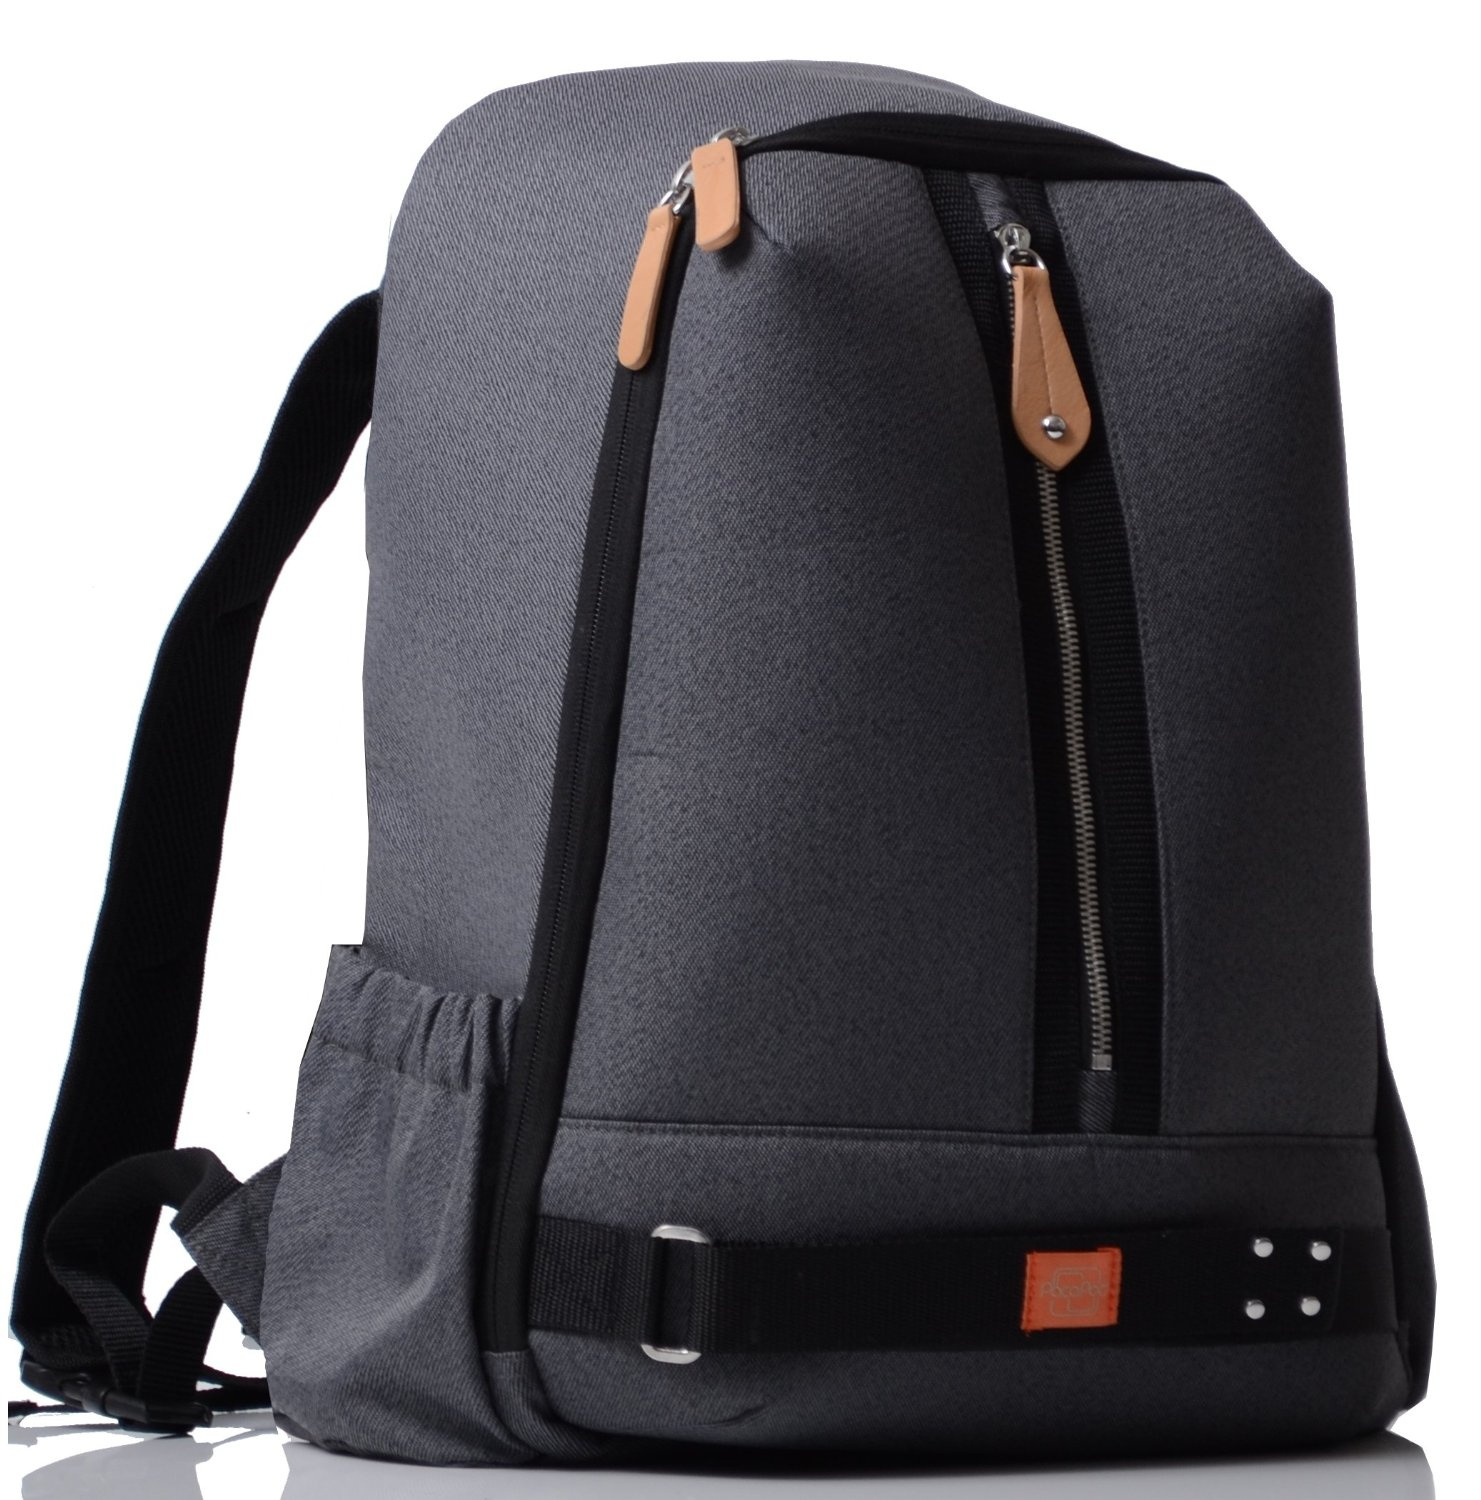 6addbbe01848 PacaPod Picos Pack Black Charcoal Designer Baby Changing Bag ...